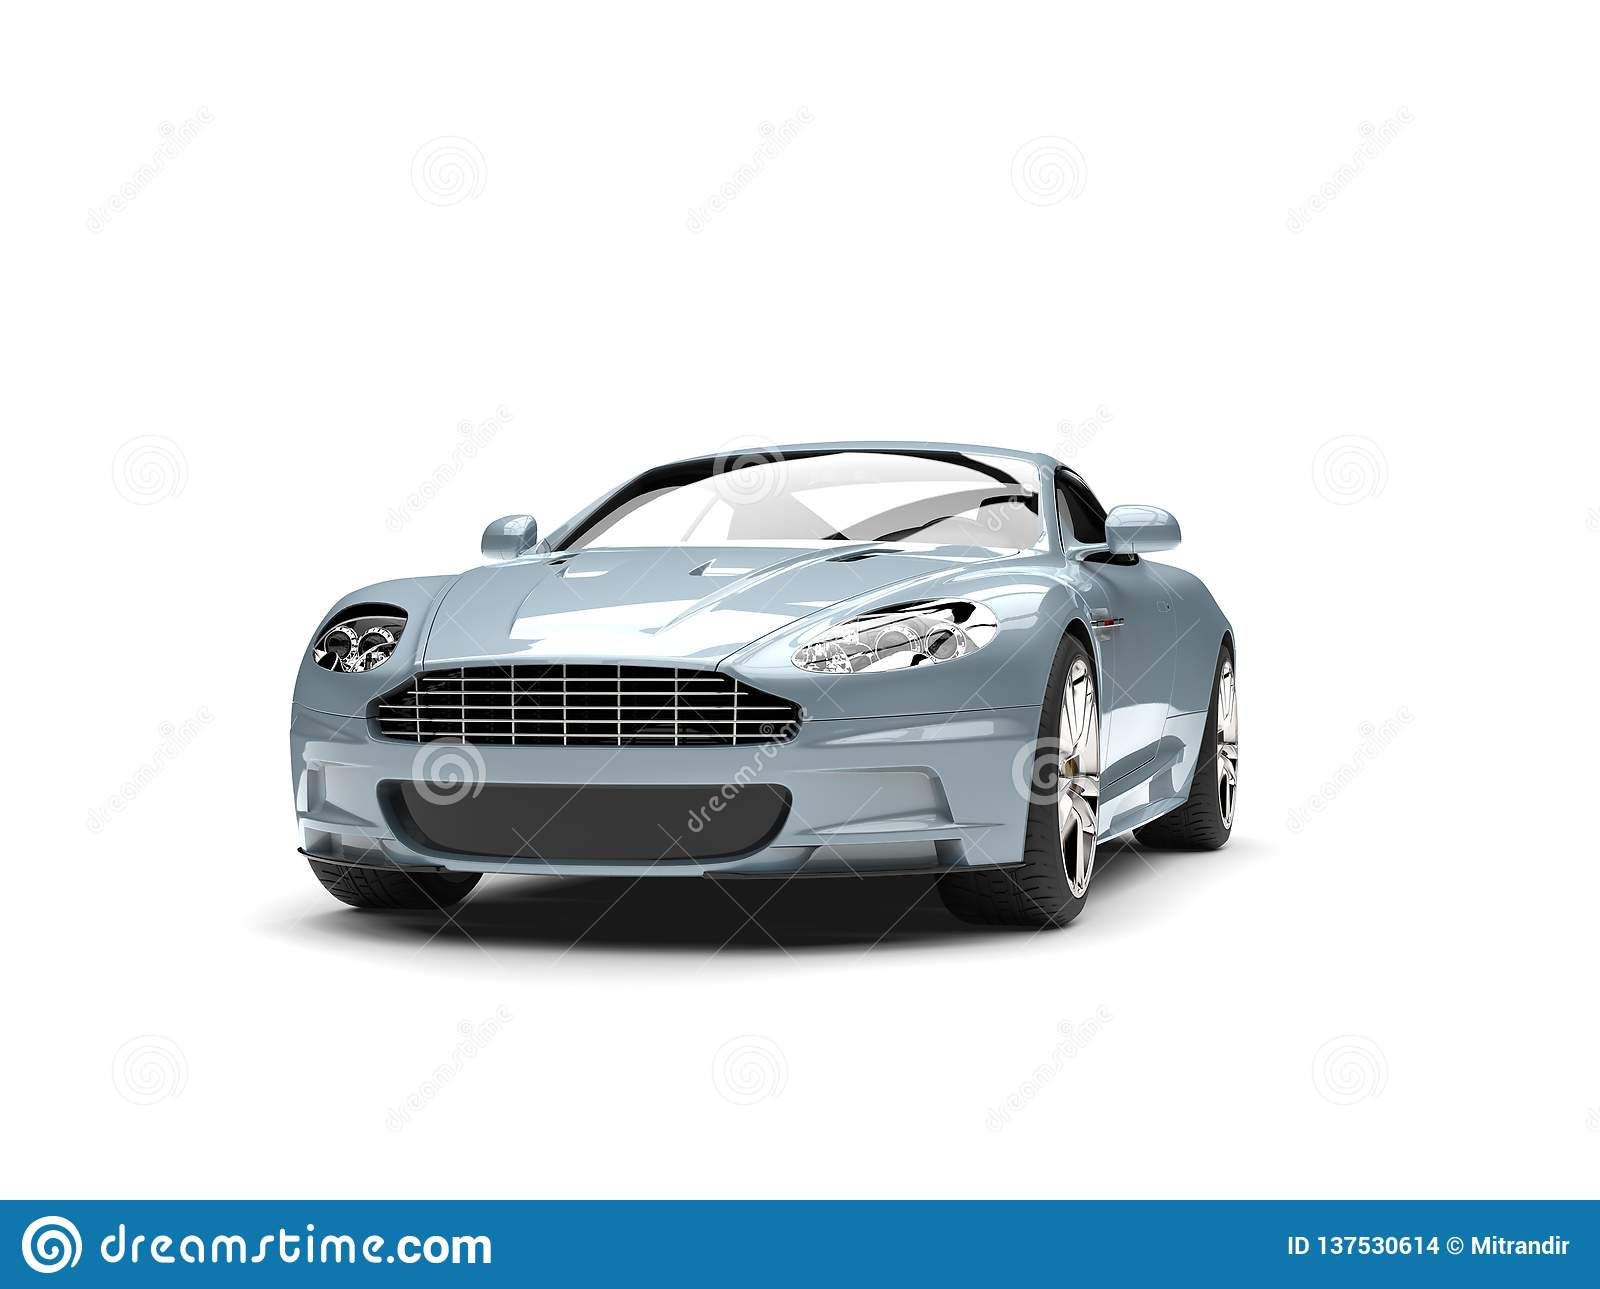 Metallic Pastel Blue Modern Sports Luxury Car Stock Illustration Illustration Of Expensive Power 137530614